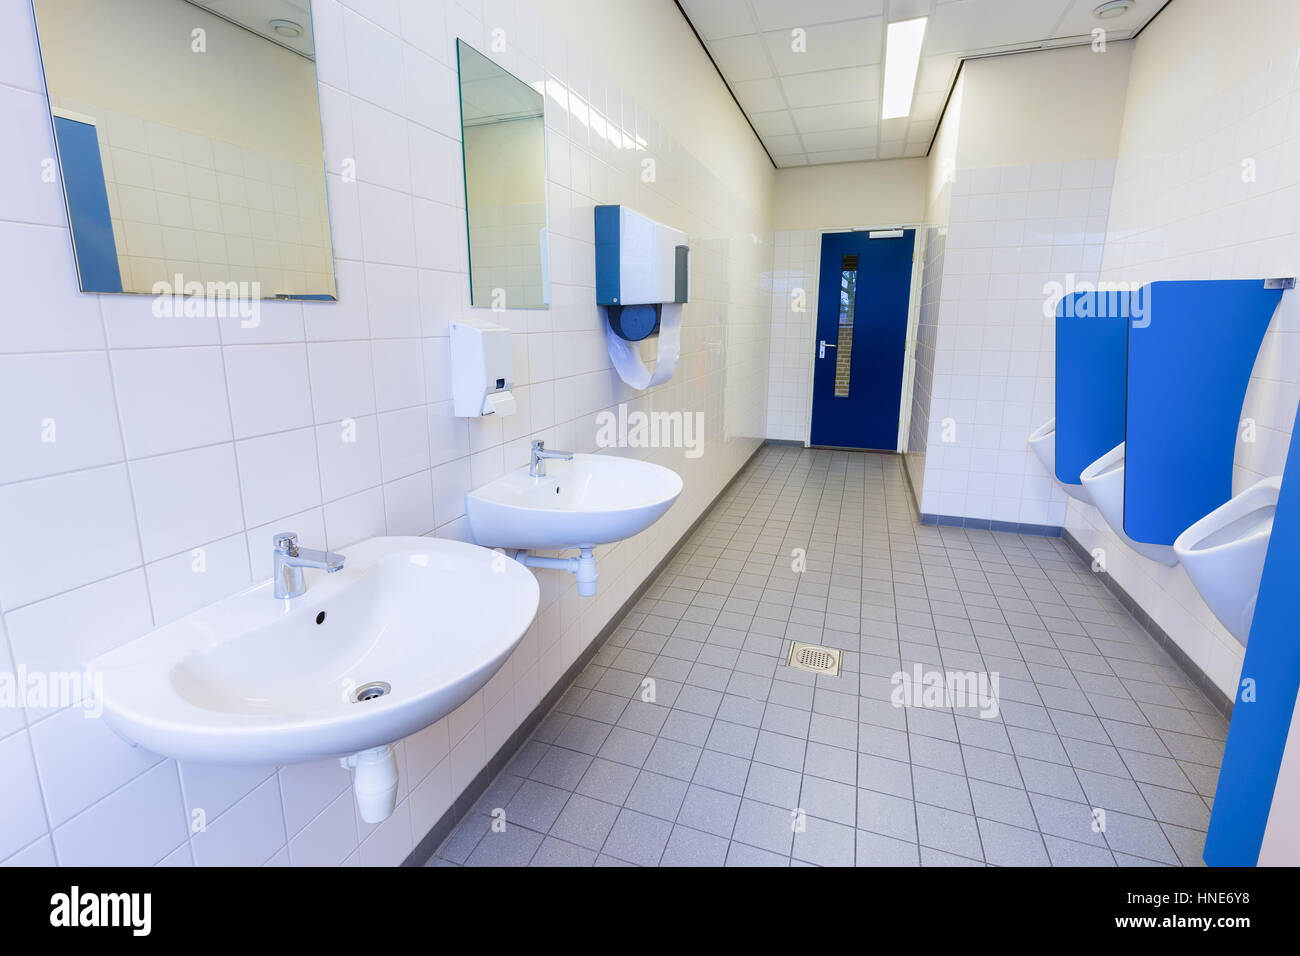 Toilet room for boys with urinals sinks and mirrors on high school ...